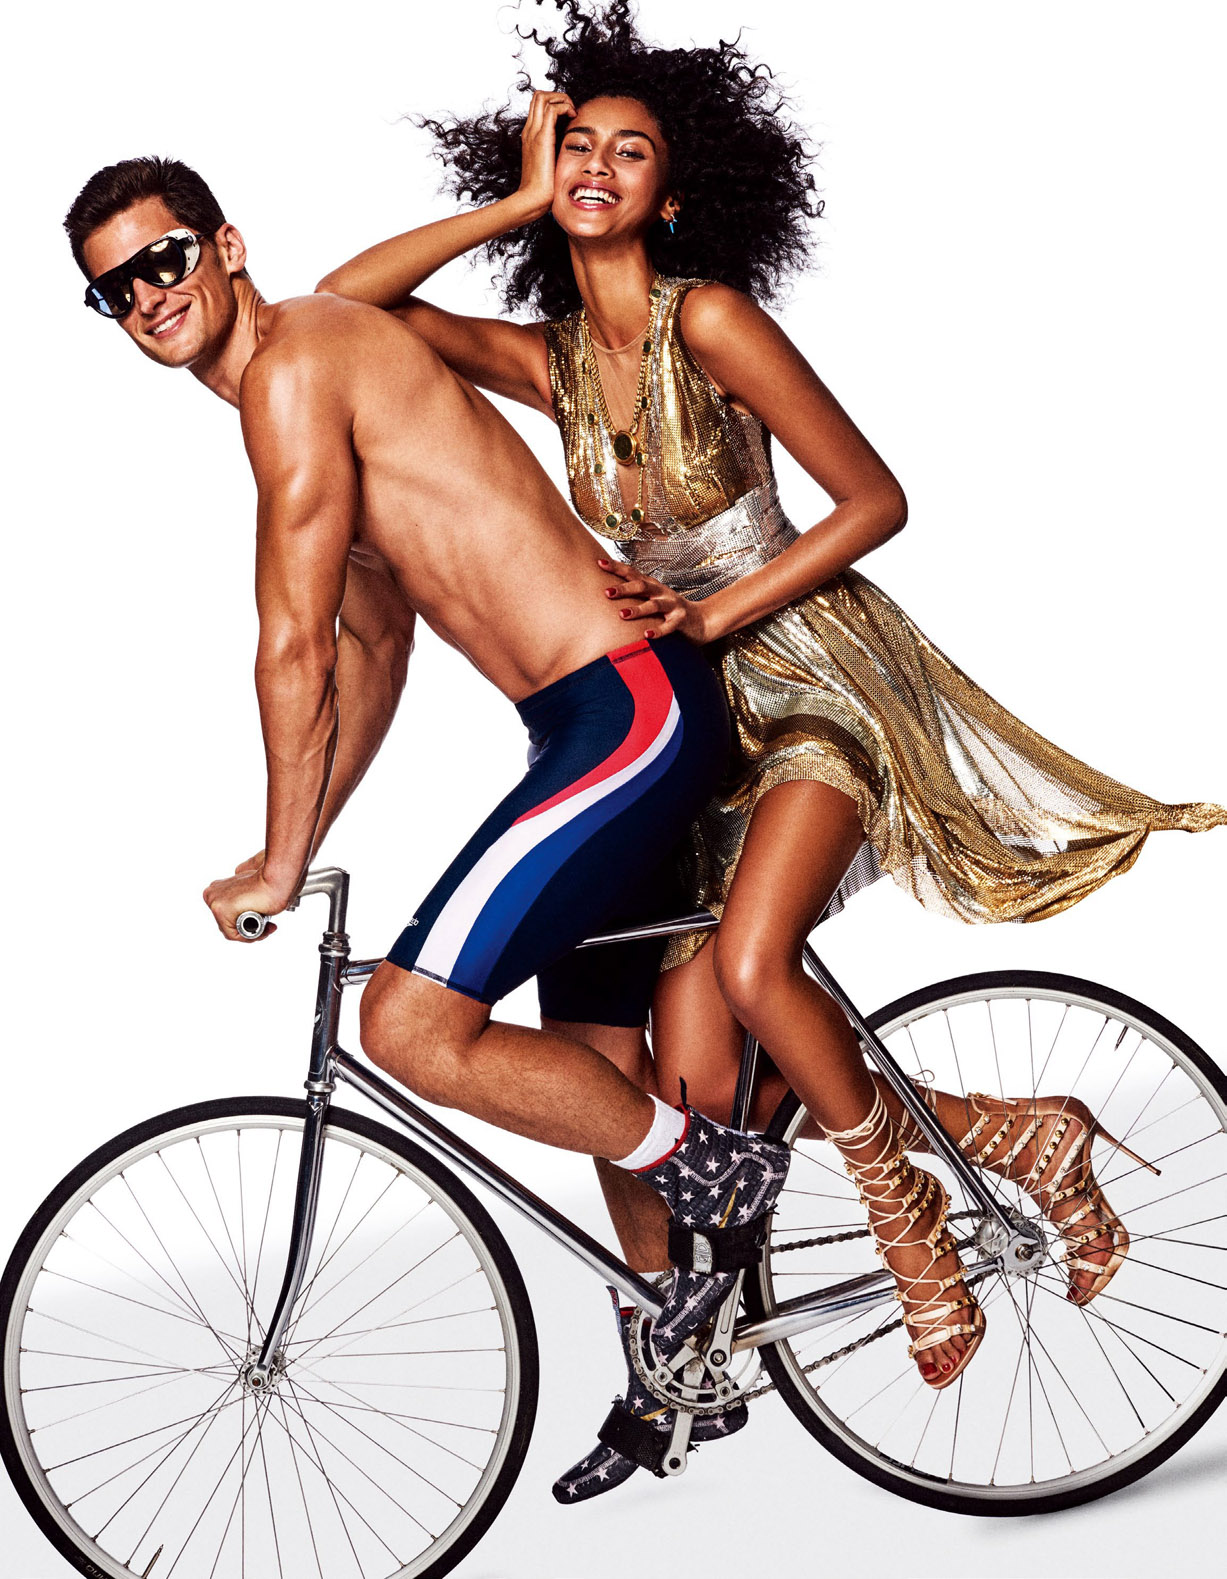 спортивная и гламурная Имаан Хаммам / Imaan Hammam, Garrett Neff, Jon Kortajarena by Giampaolo Sgura - Vogue Japan May 2017